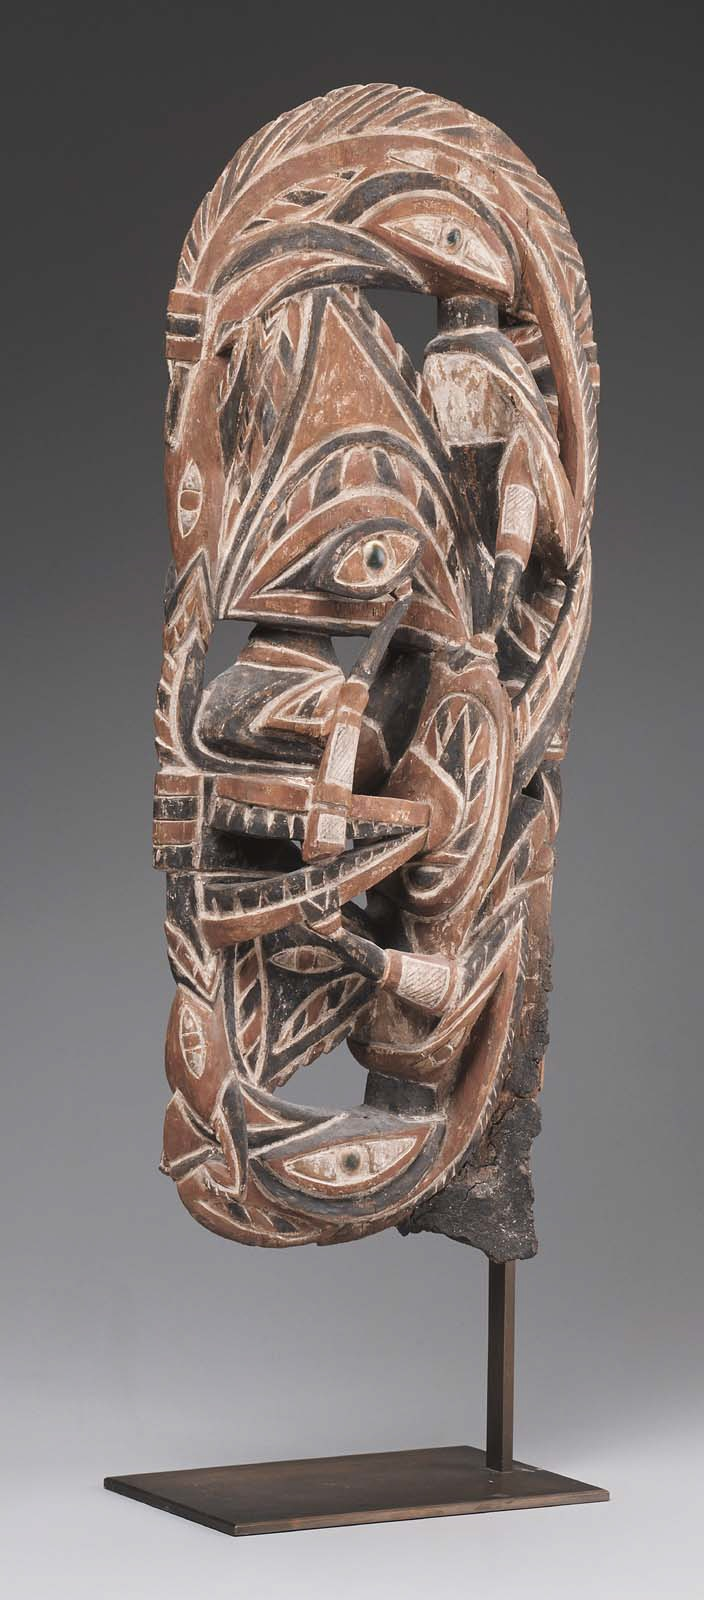 Object type: Canoe Prow Indigenous name: N/A Culture/ location: Oceanic, Papua New Guinea, Northern New Ireland Date: 19th – 20th century Materials: Wood and pigment Dimensions: 21 1/2 x 5 x 9 in Institution and accession number: Museum of Fine Arts Boston: Arts of Asia, Oceania, and Africa Gallery (Gallery 177) 1991.1073